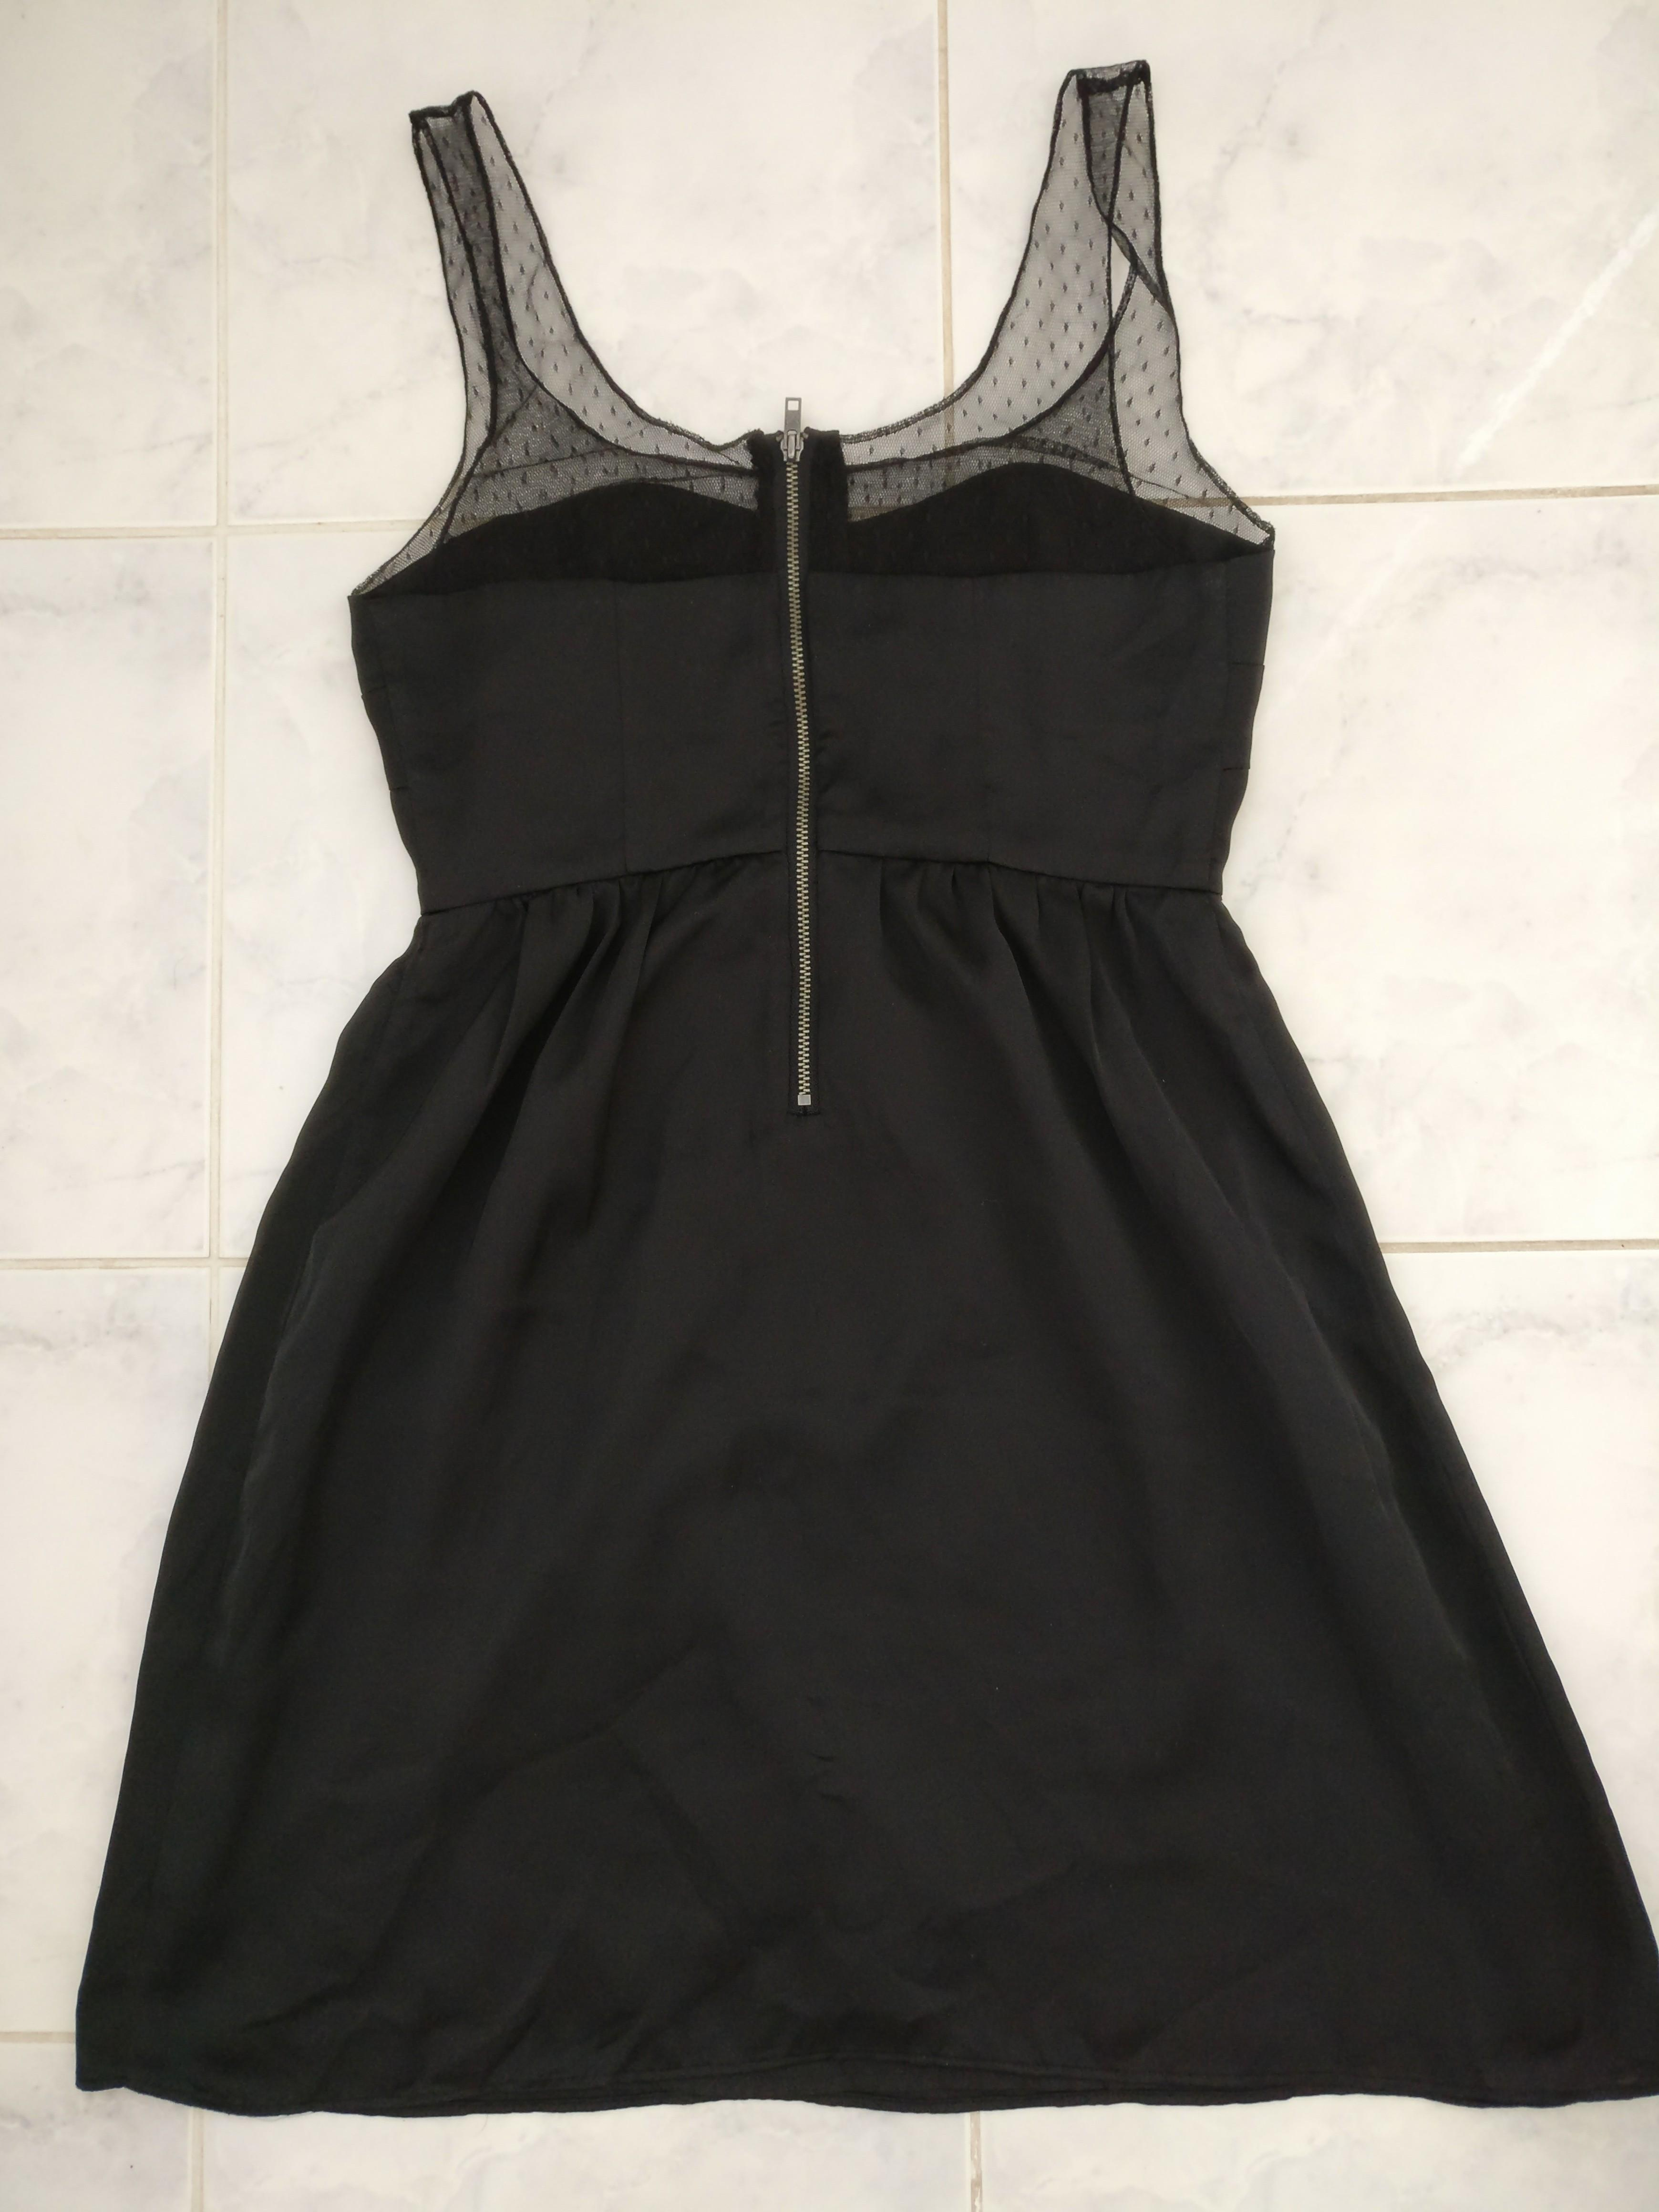 Limited Edition Satin Black Dress from American Eagle, Size 2.